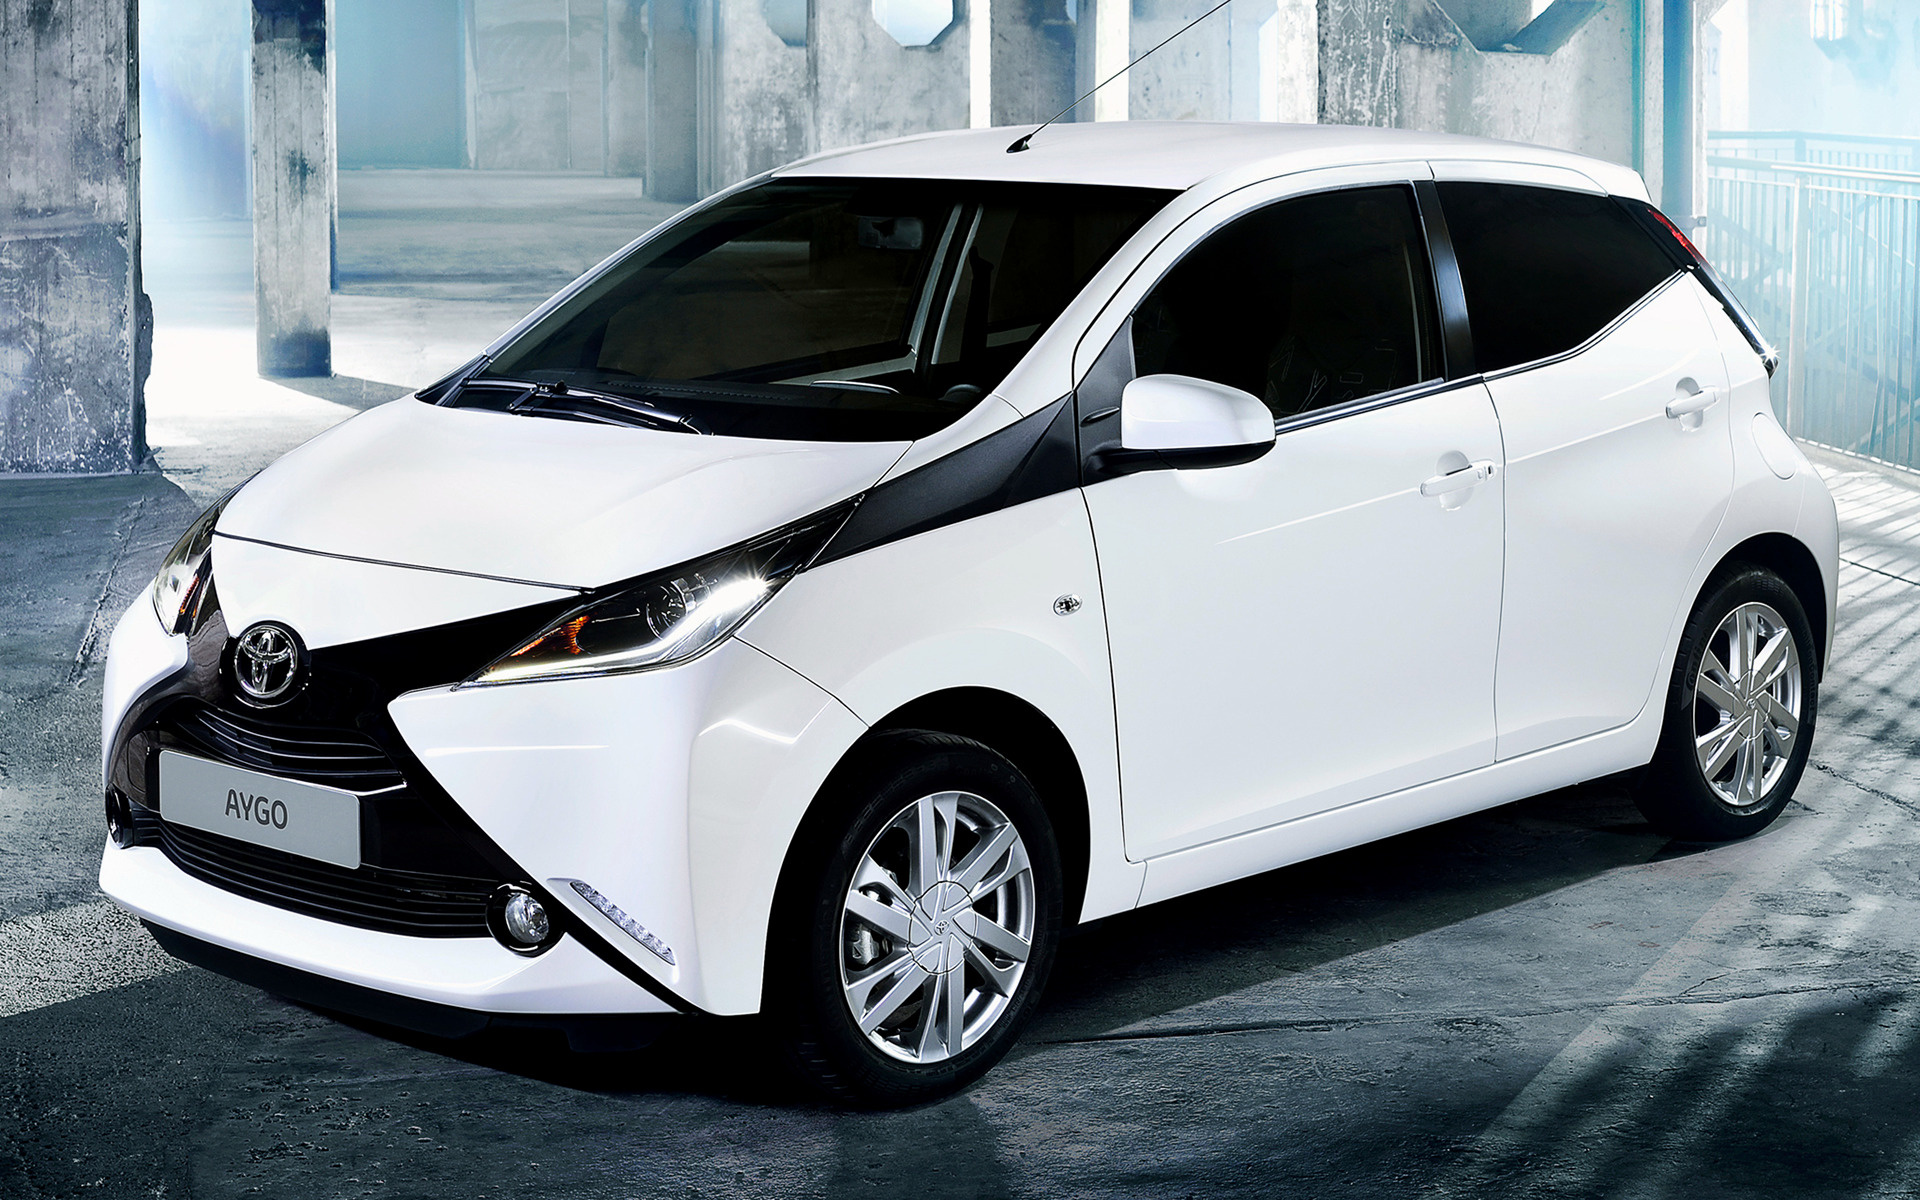 toyota aygo x play 5 door 2014 wallpapers and hd images. Black Bedroom Furniture Sets. Home Design Ideas